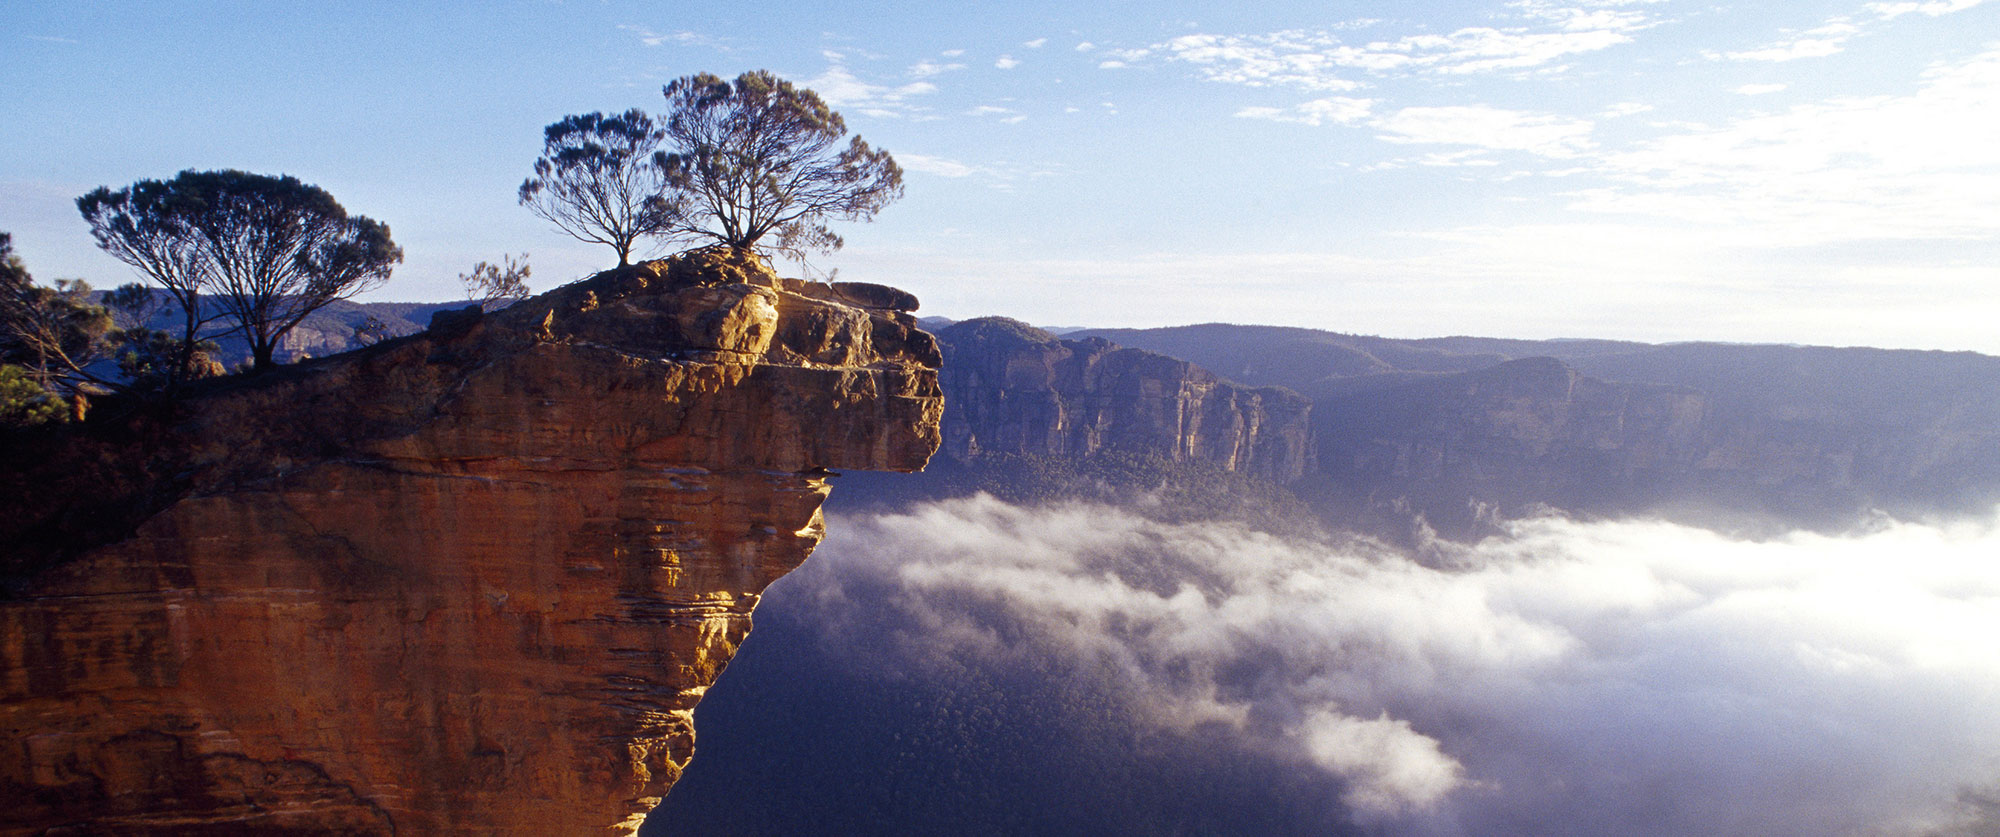 Australia Travel Package - Blue Mountains